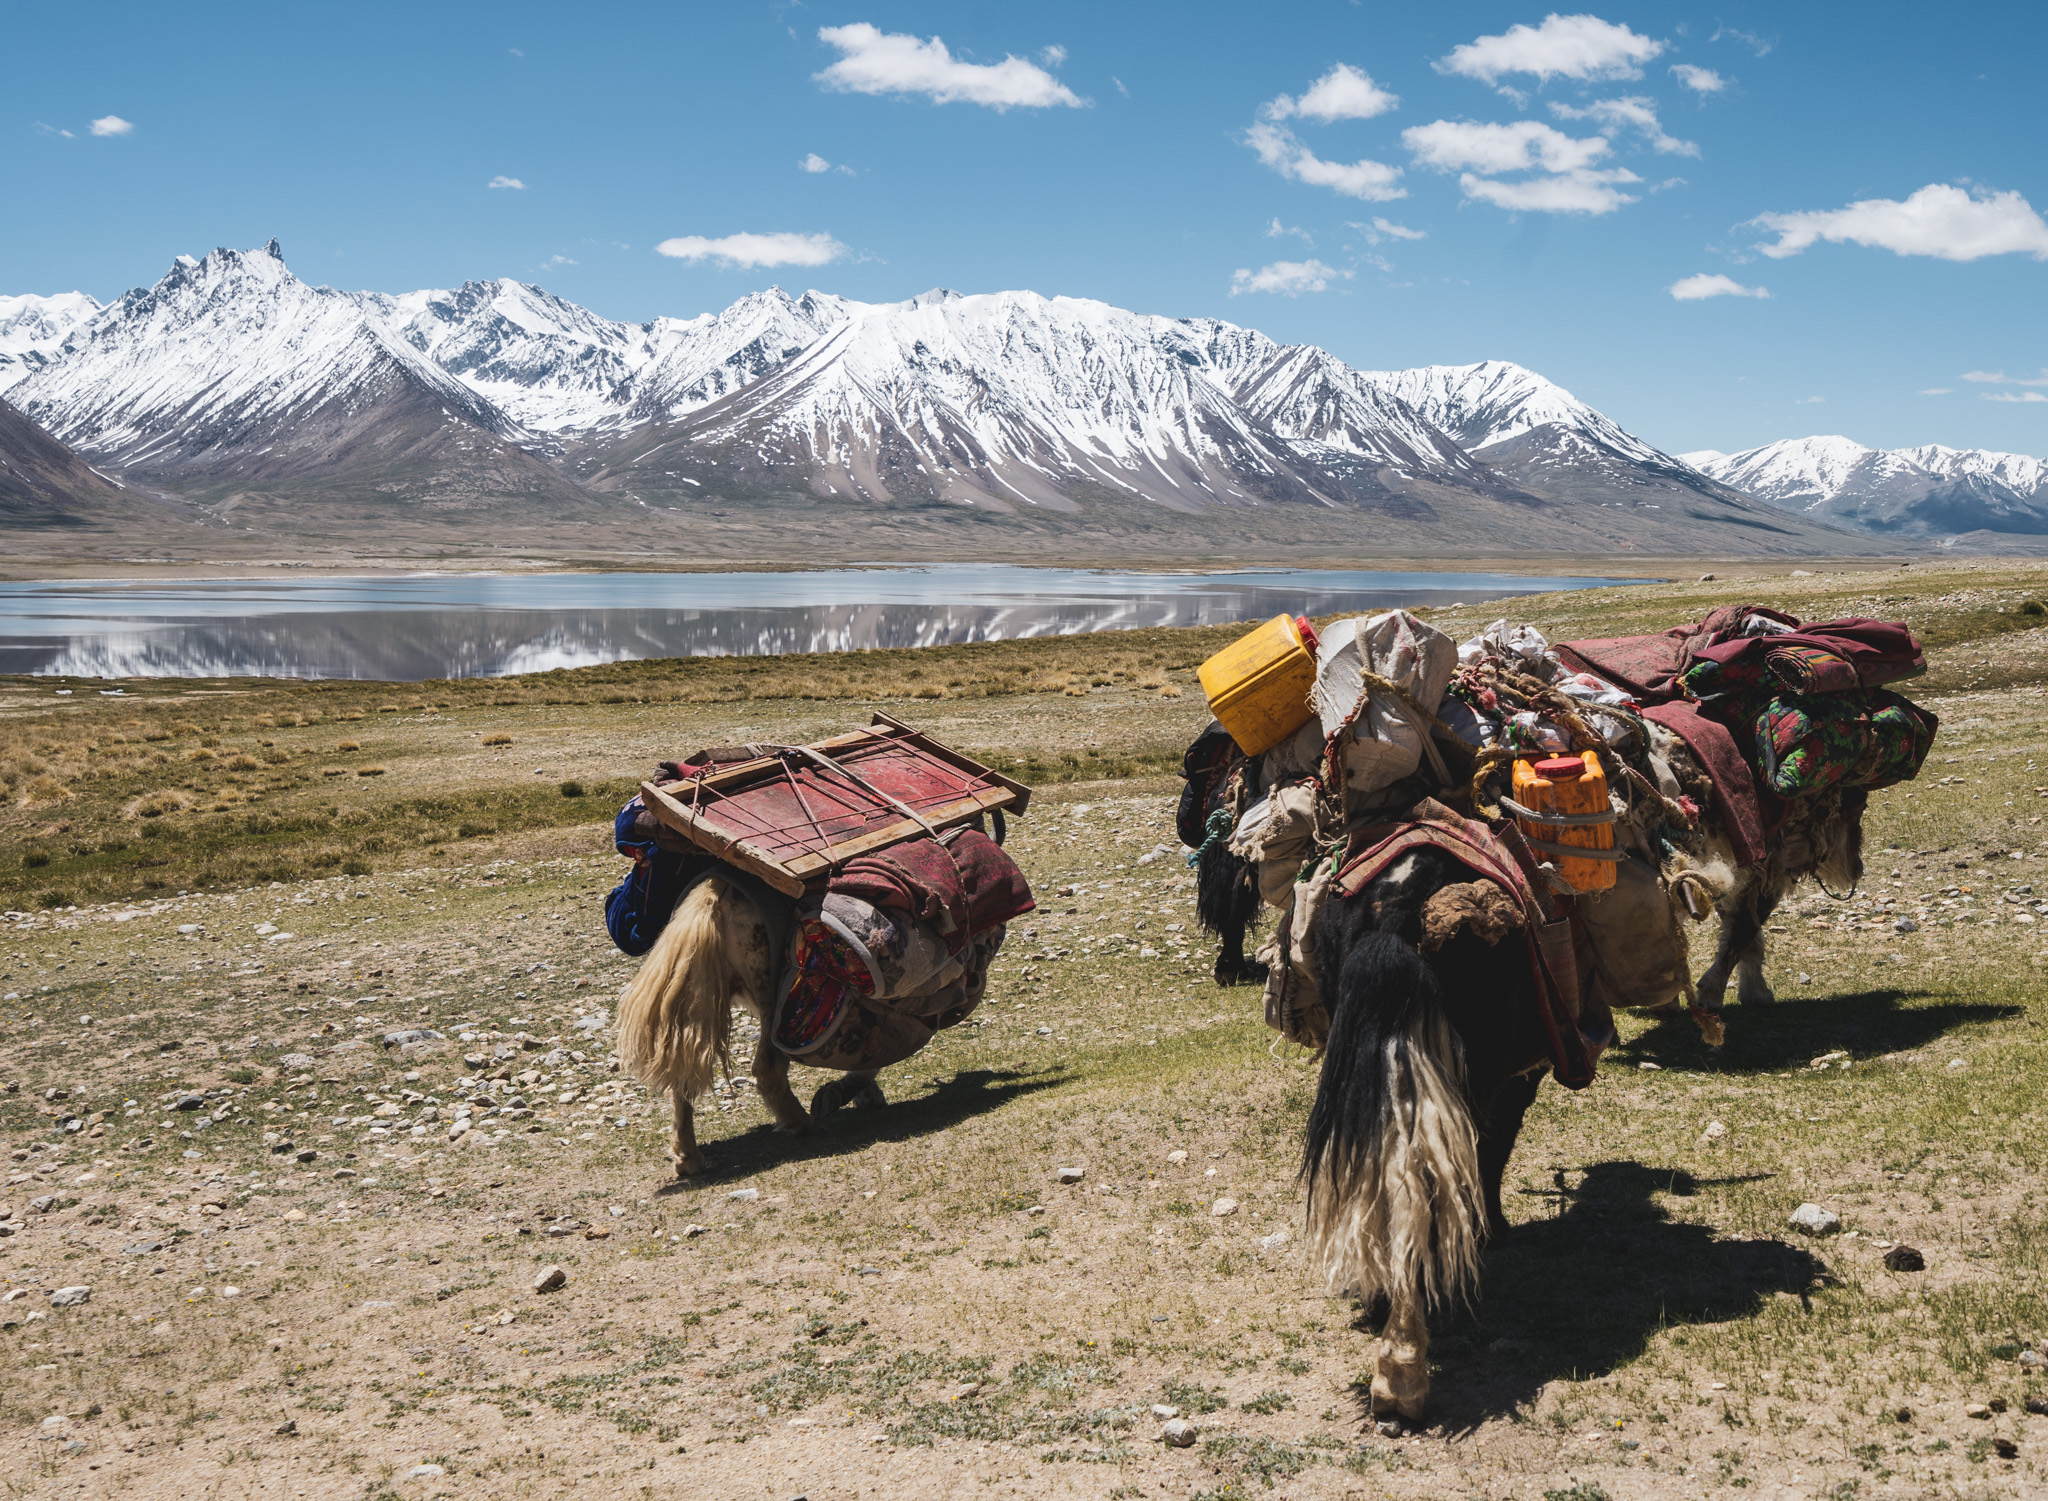 Yaks in the Little Pamir